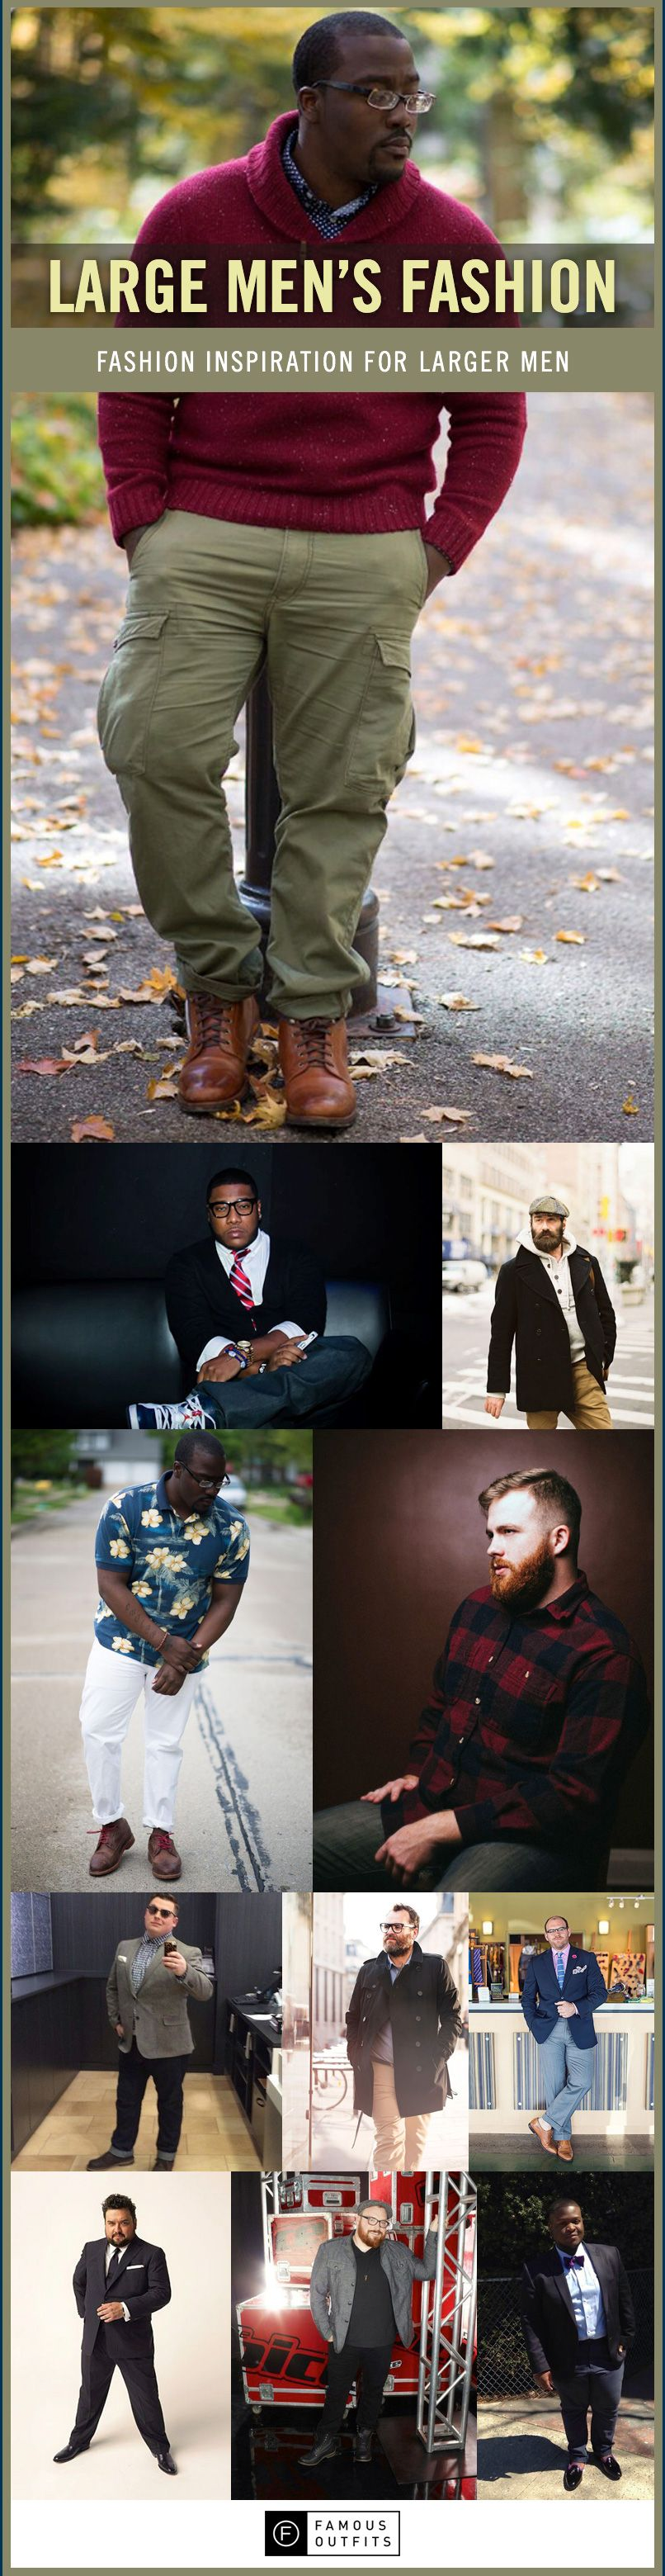 Large Men\u0027s Fashion | Display, Inspiration and Collection